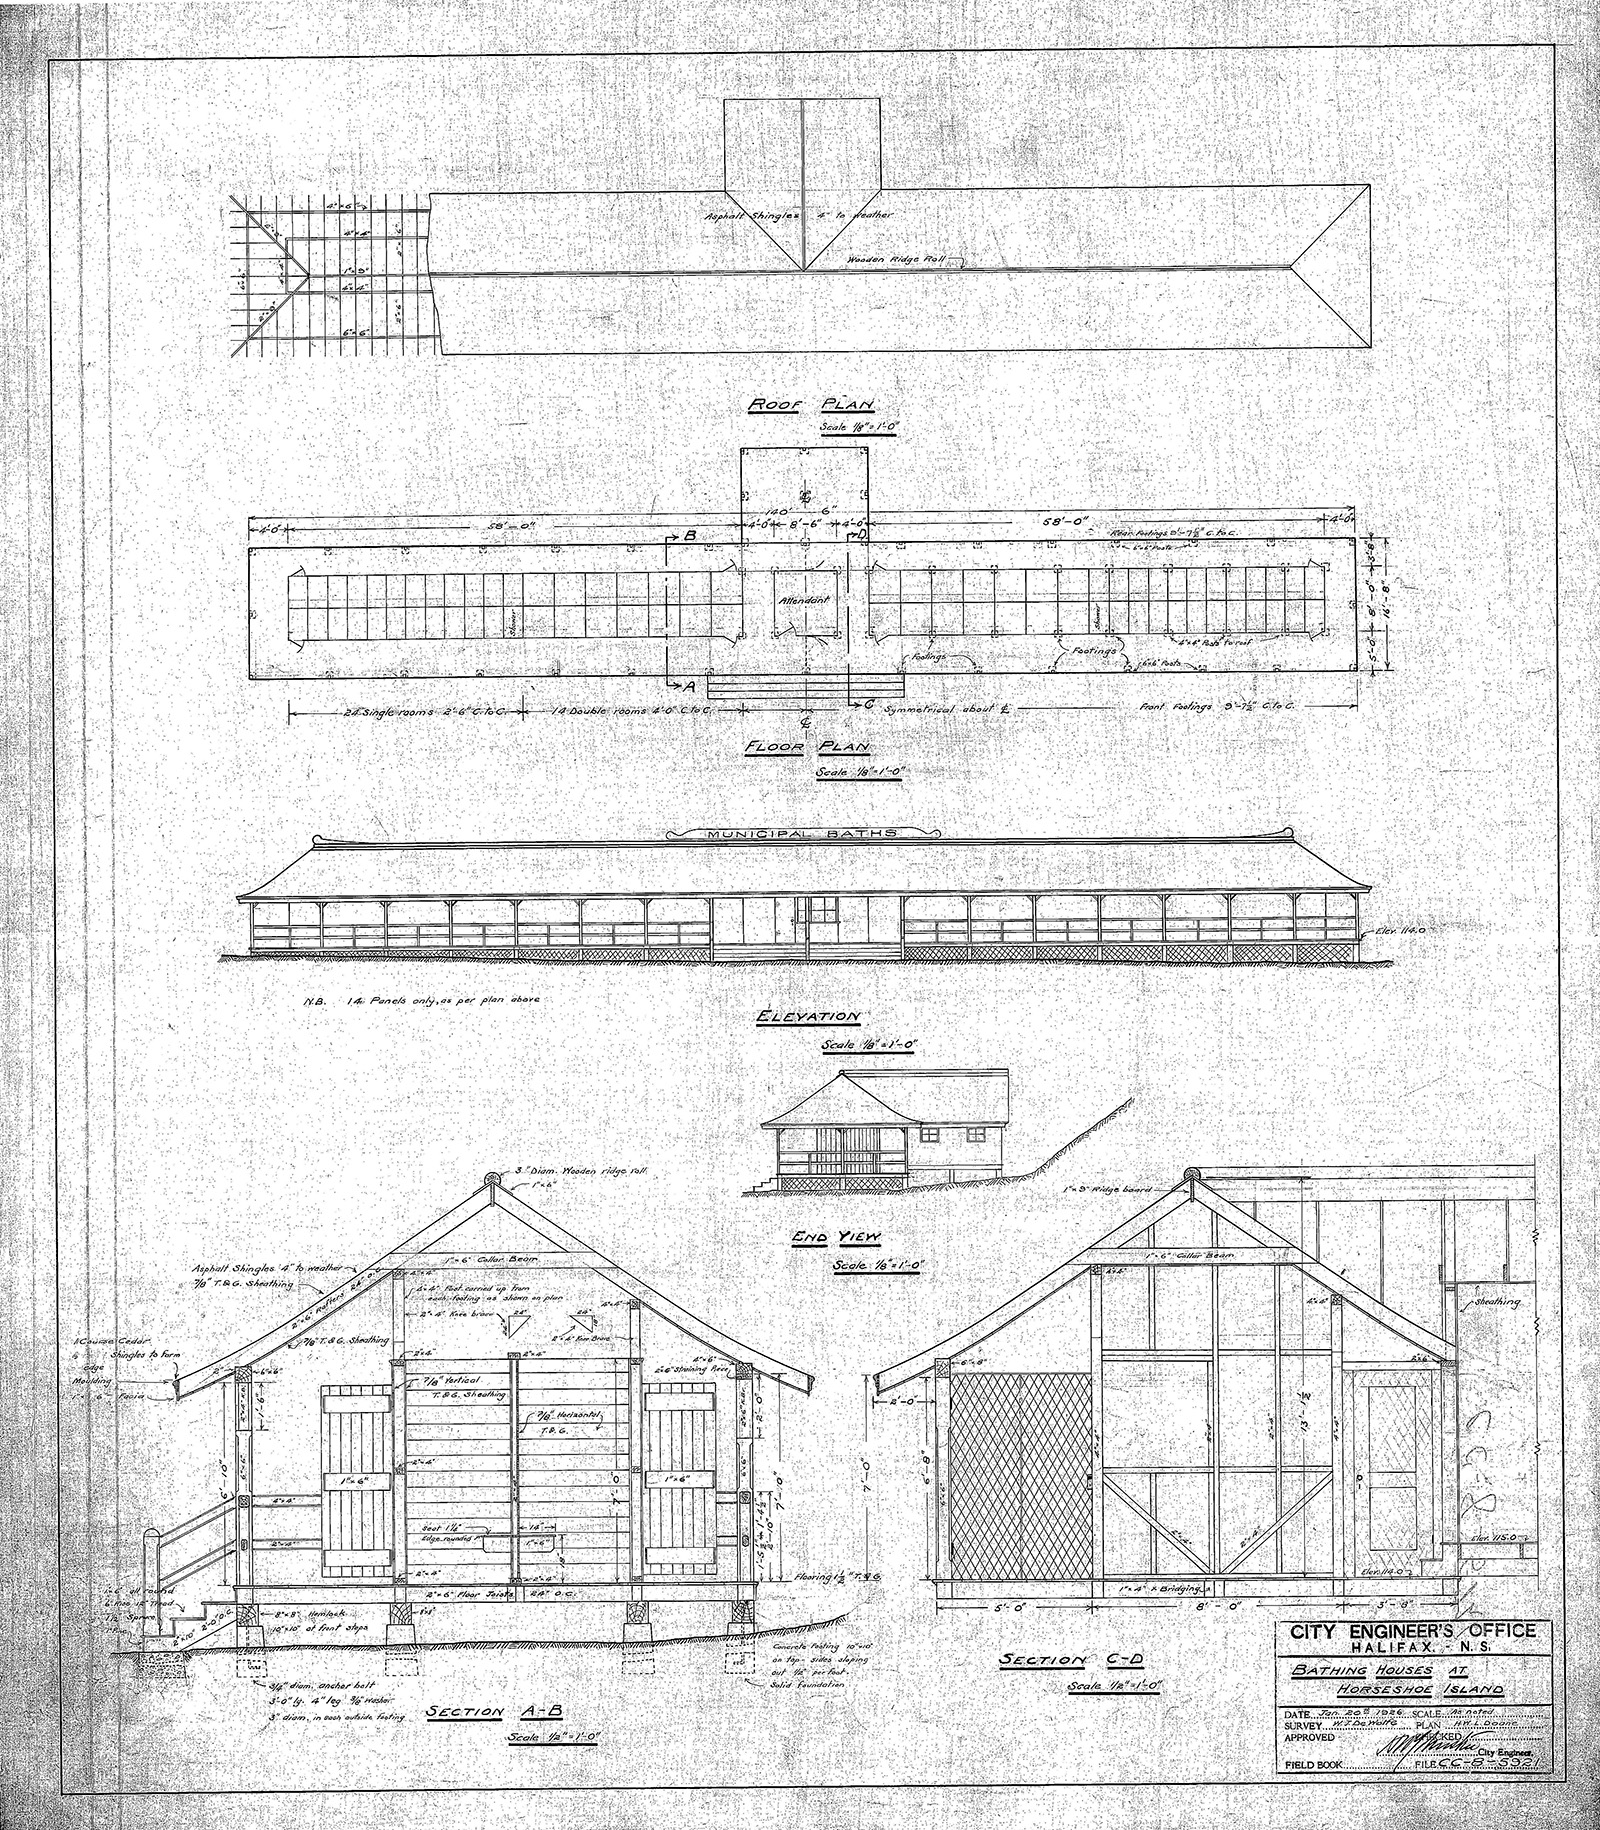 Architectural plan for Bathing House at Horseshoe Island, January, 1926. [CC-8-5921]